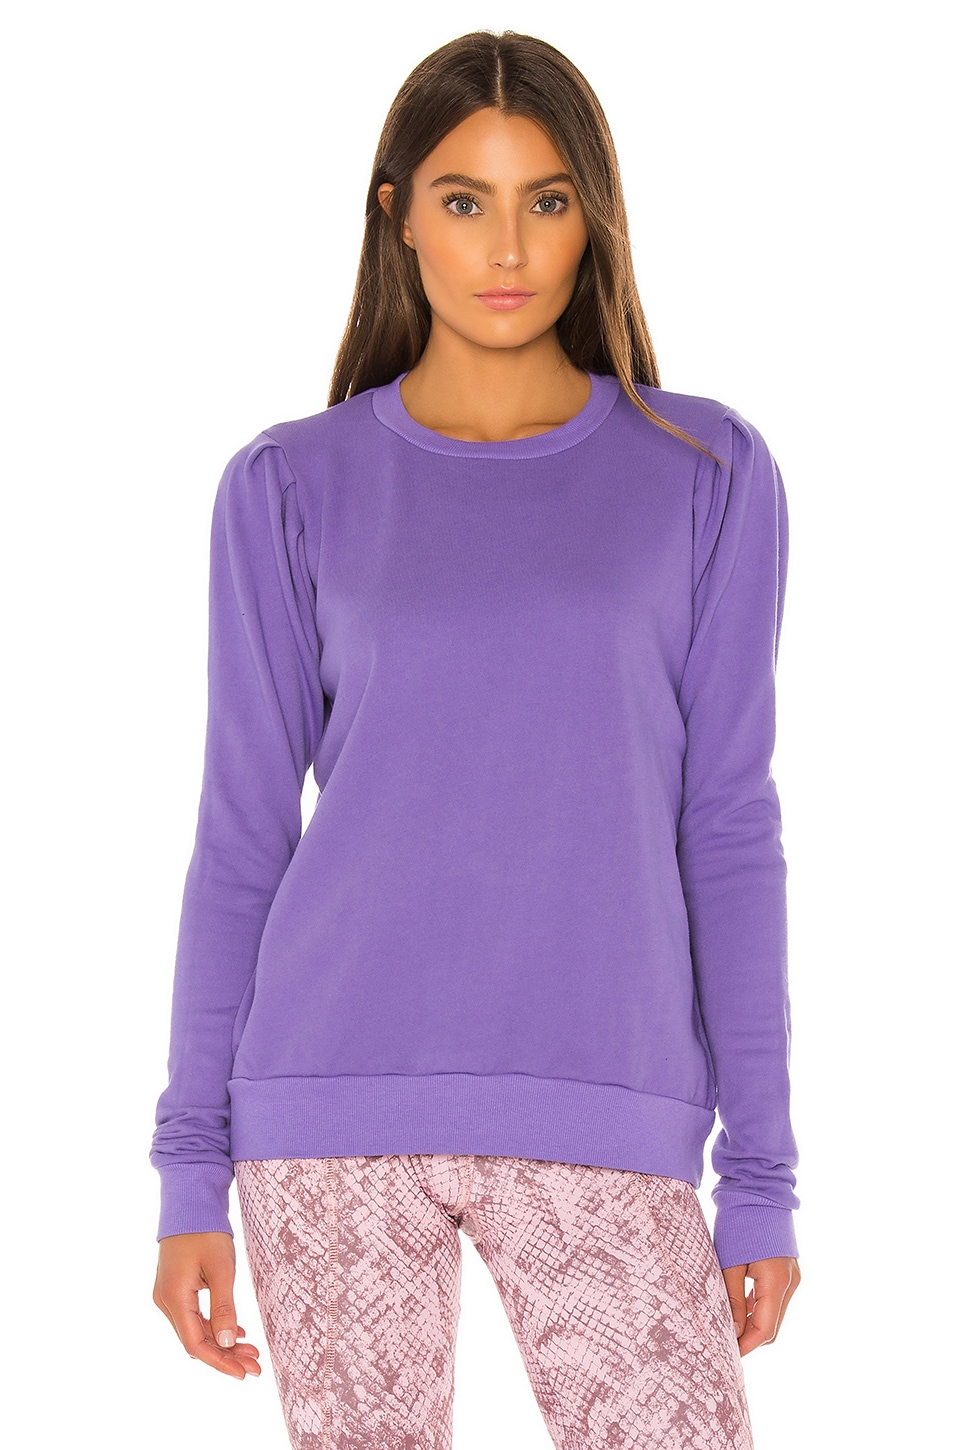 YEAR OF OURS The Gloria Sweatshirt in Orchid